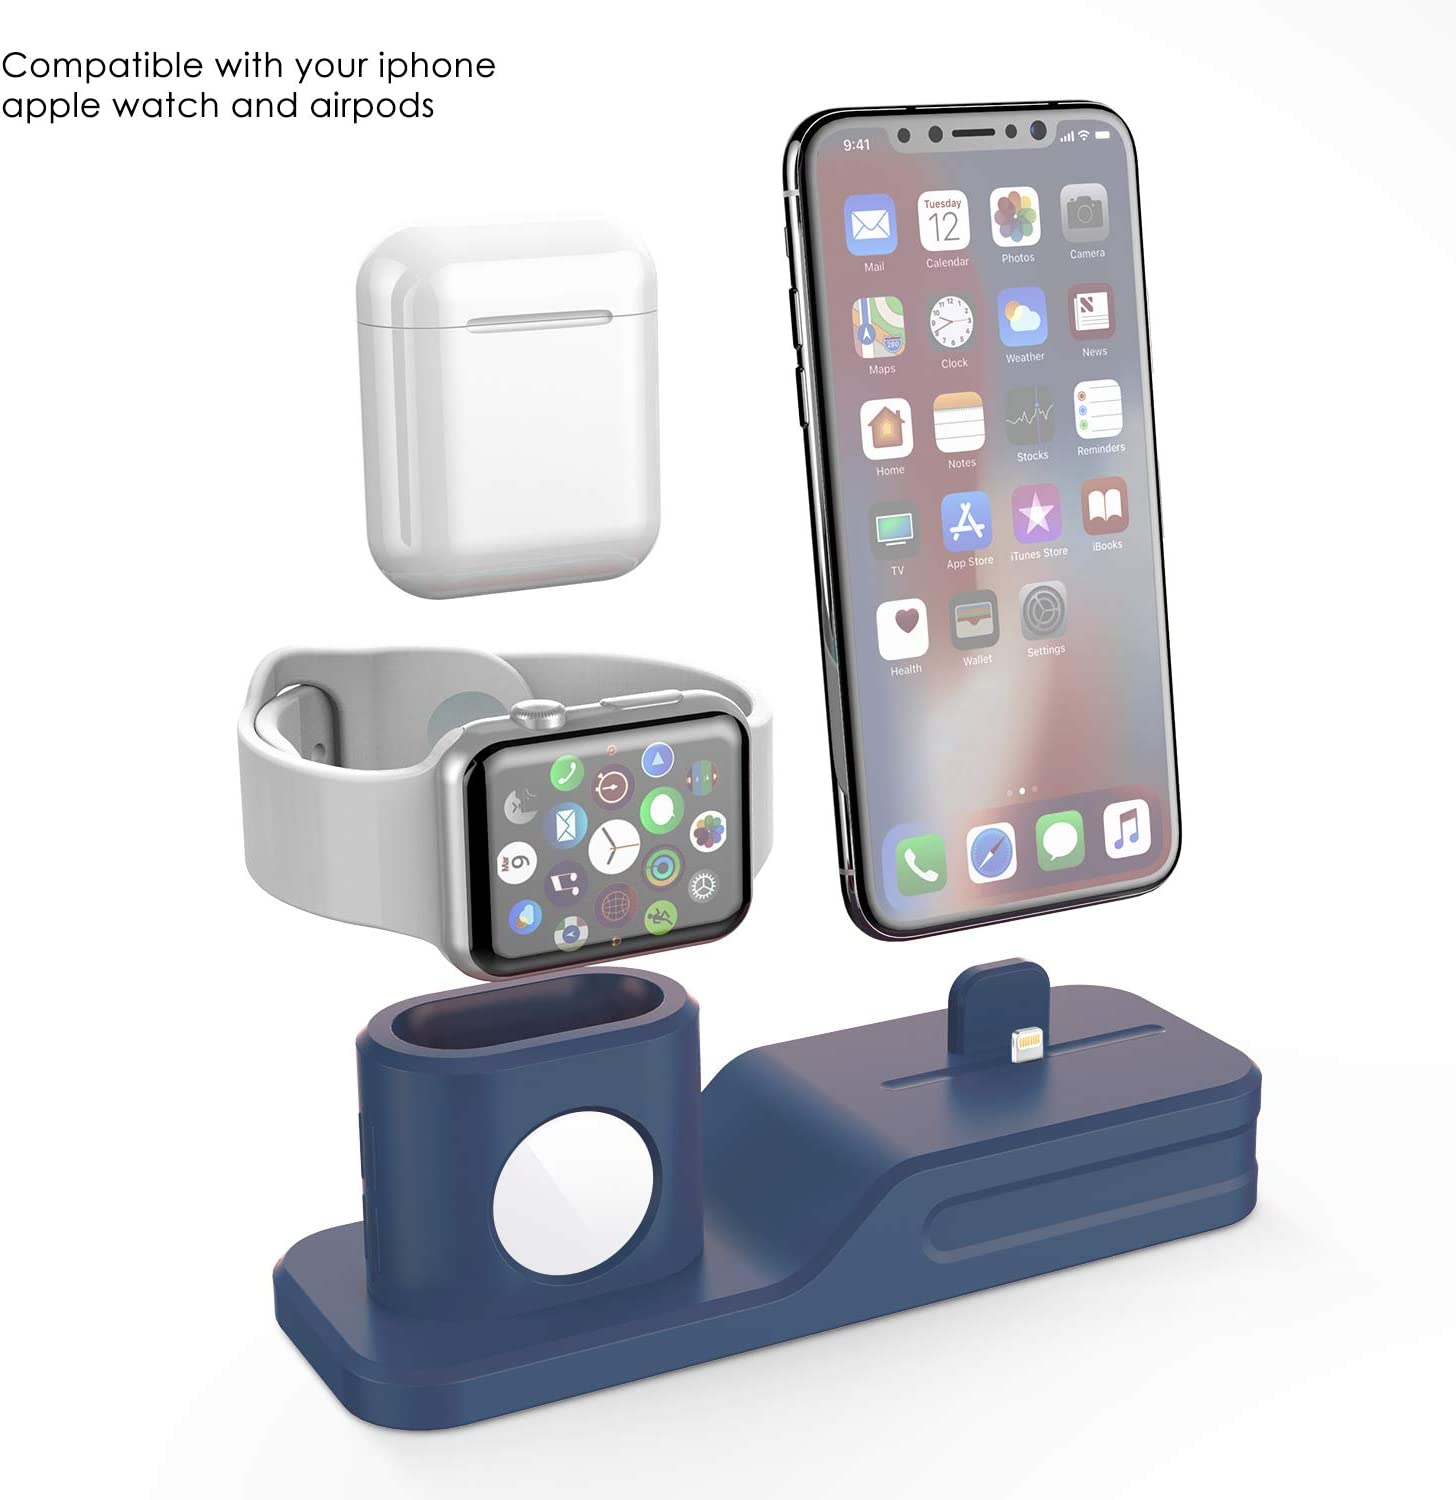 AirPods and iPhone 11 Pro Max XS Max XS XR X 8 7 6 Plus Upgraded 3 in 1 Charging Dock Station Universal Desktop Stand Holder Compatible Apple Watch Black Charging Stand for Apple